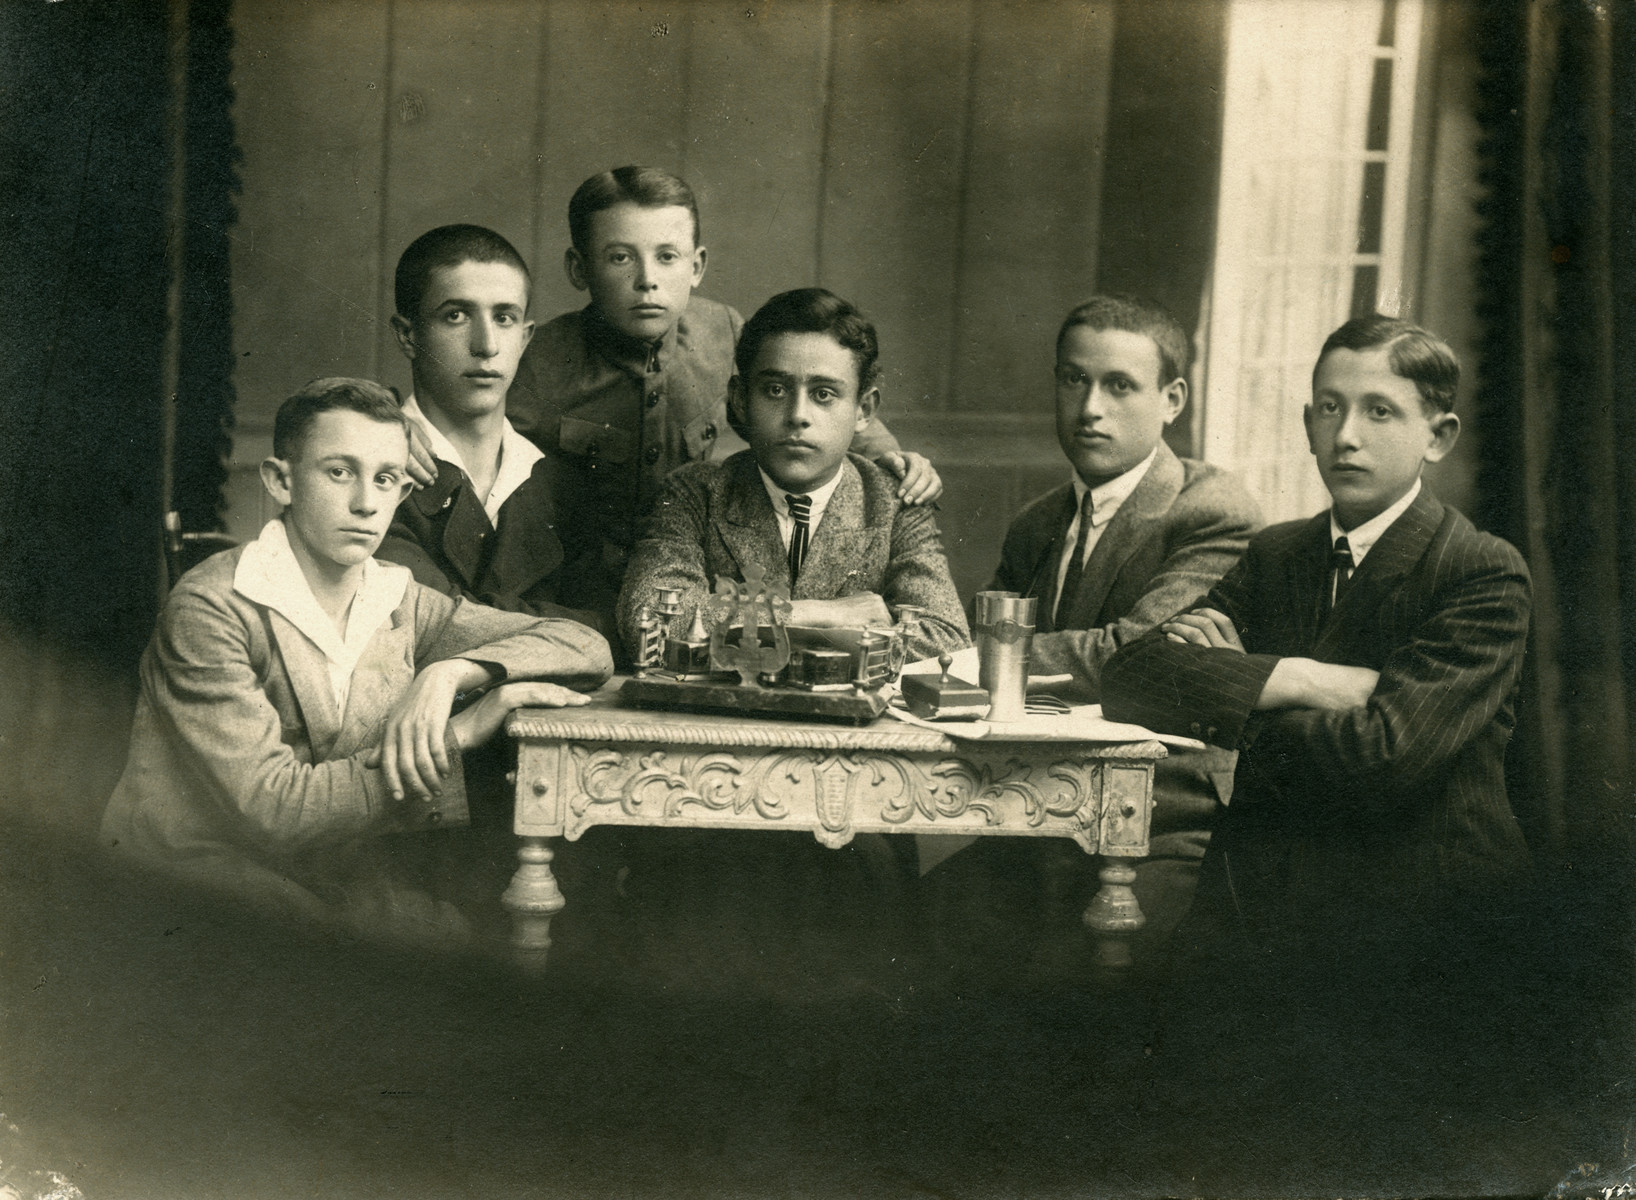 A photo of six young boys sitting and standing aroung a table. Feivel Frankfowicz is on the far left and his friend Lubici Weinstein is in the middle.